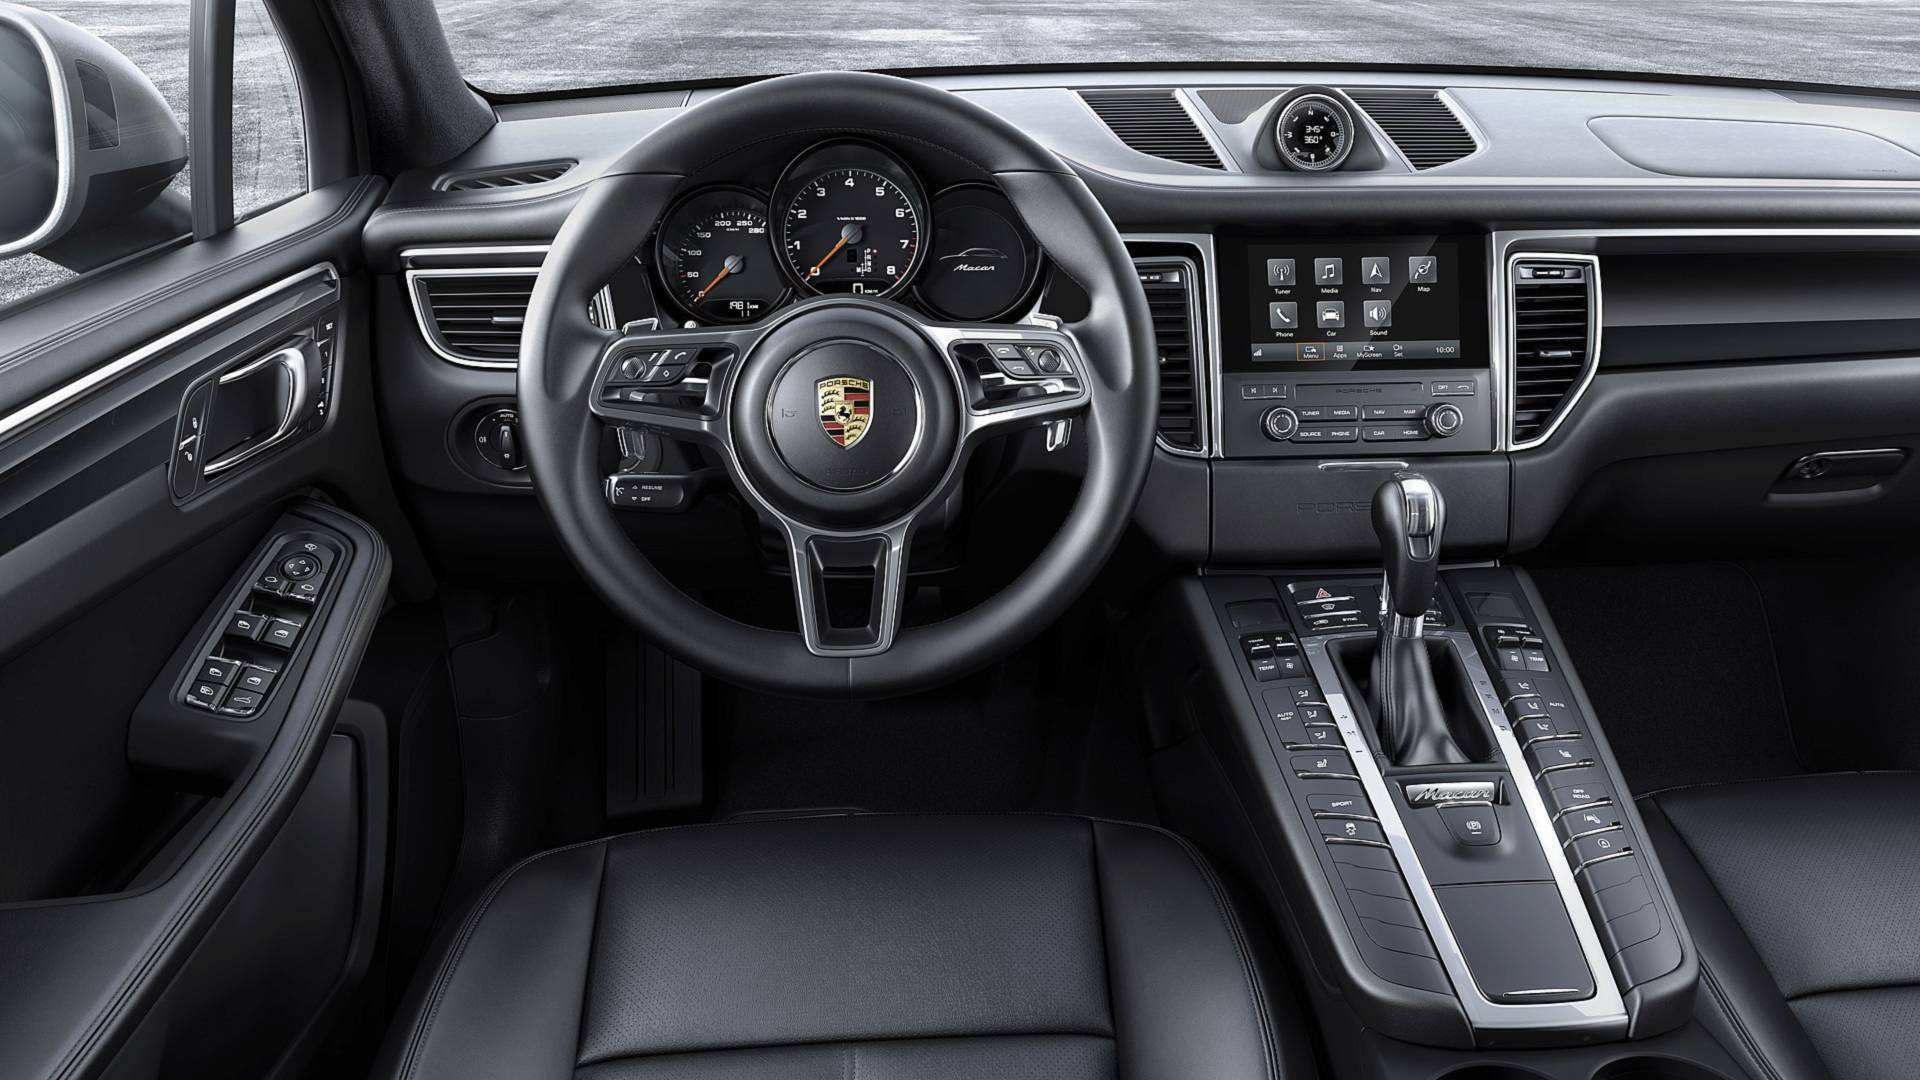 28 Gallery of 2019 Porsche Macan Interior Configurations with 2019 Porsche Macan Interior